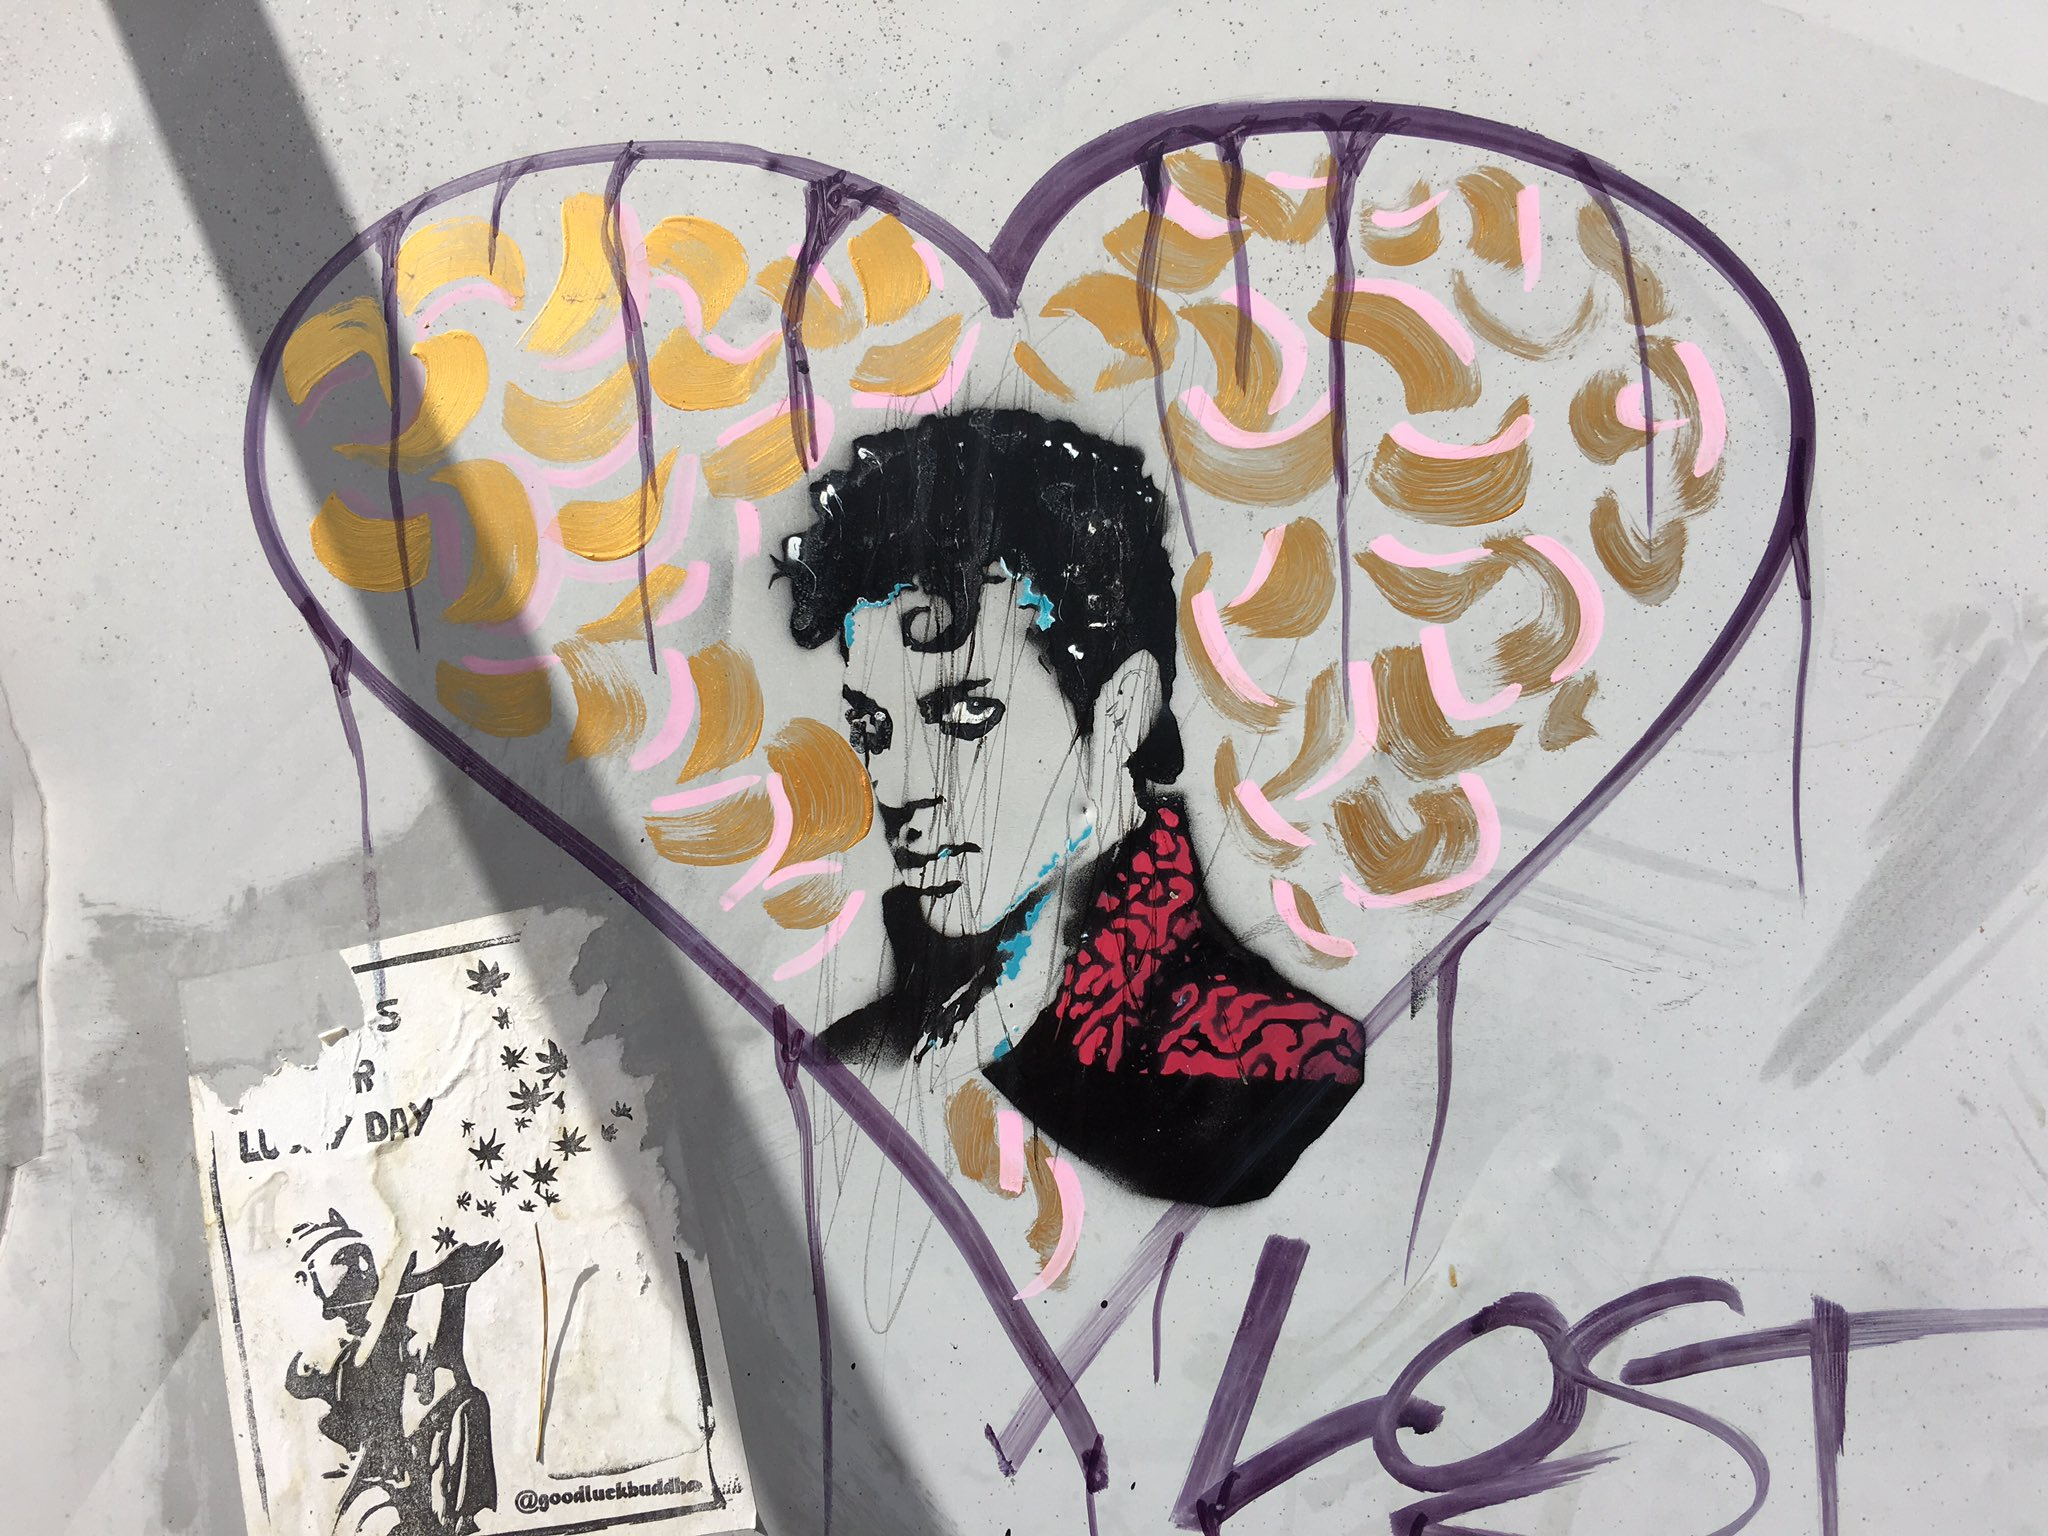 prince aceness https://t.co/y5RSblLd1Q